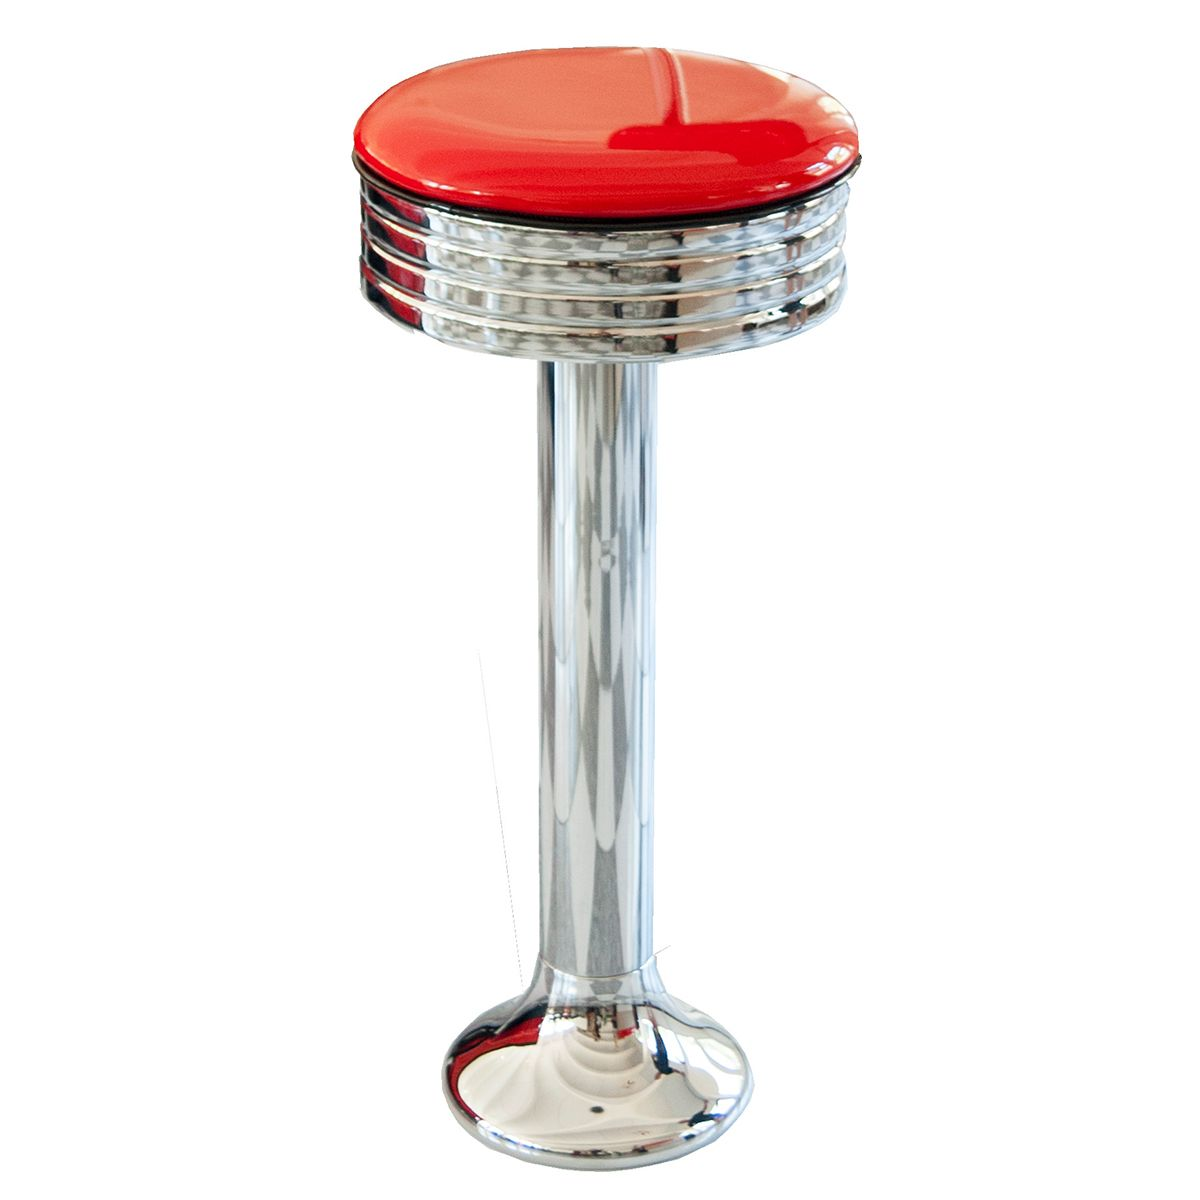 Floor Mounted Diner Bar Stool American Diner Bar Stool